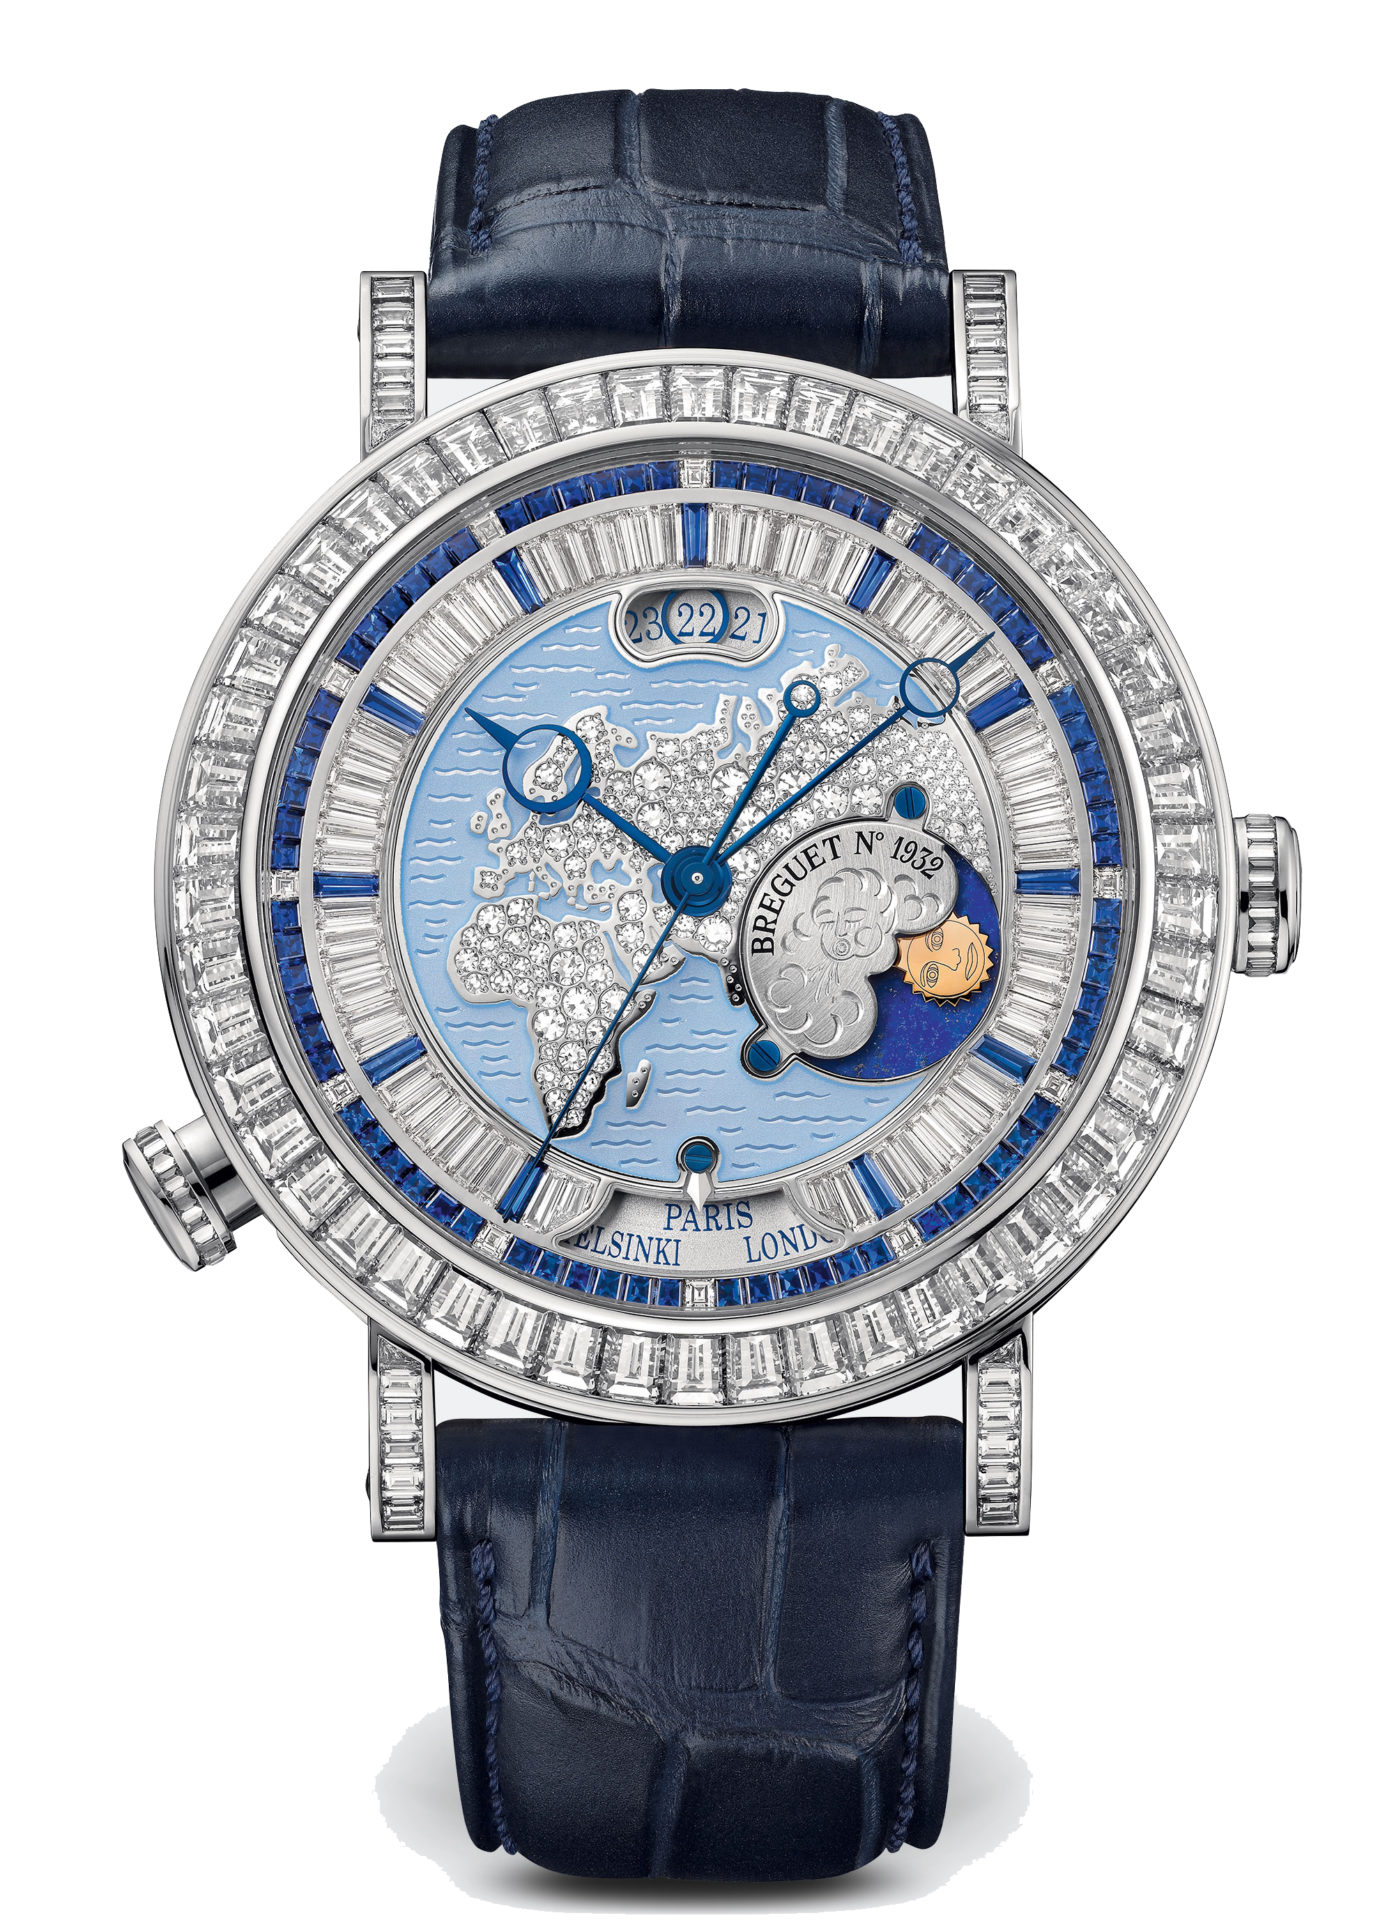 Breguet-Classique-Hora-Mundi-5719-Hall-of-Time-5719pt-eu-9zv-dd0d